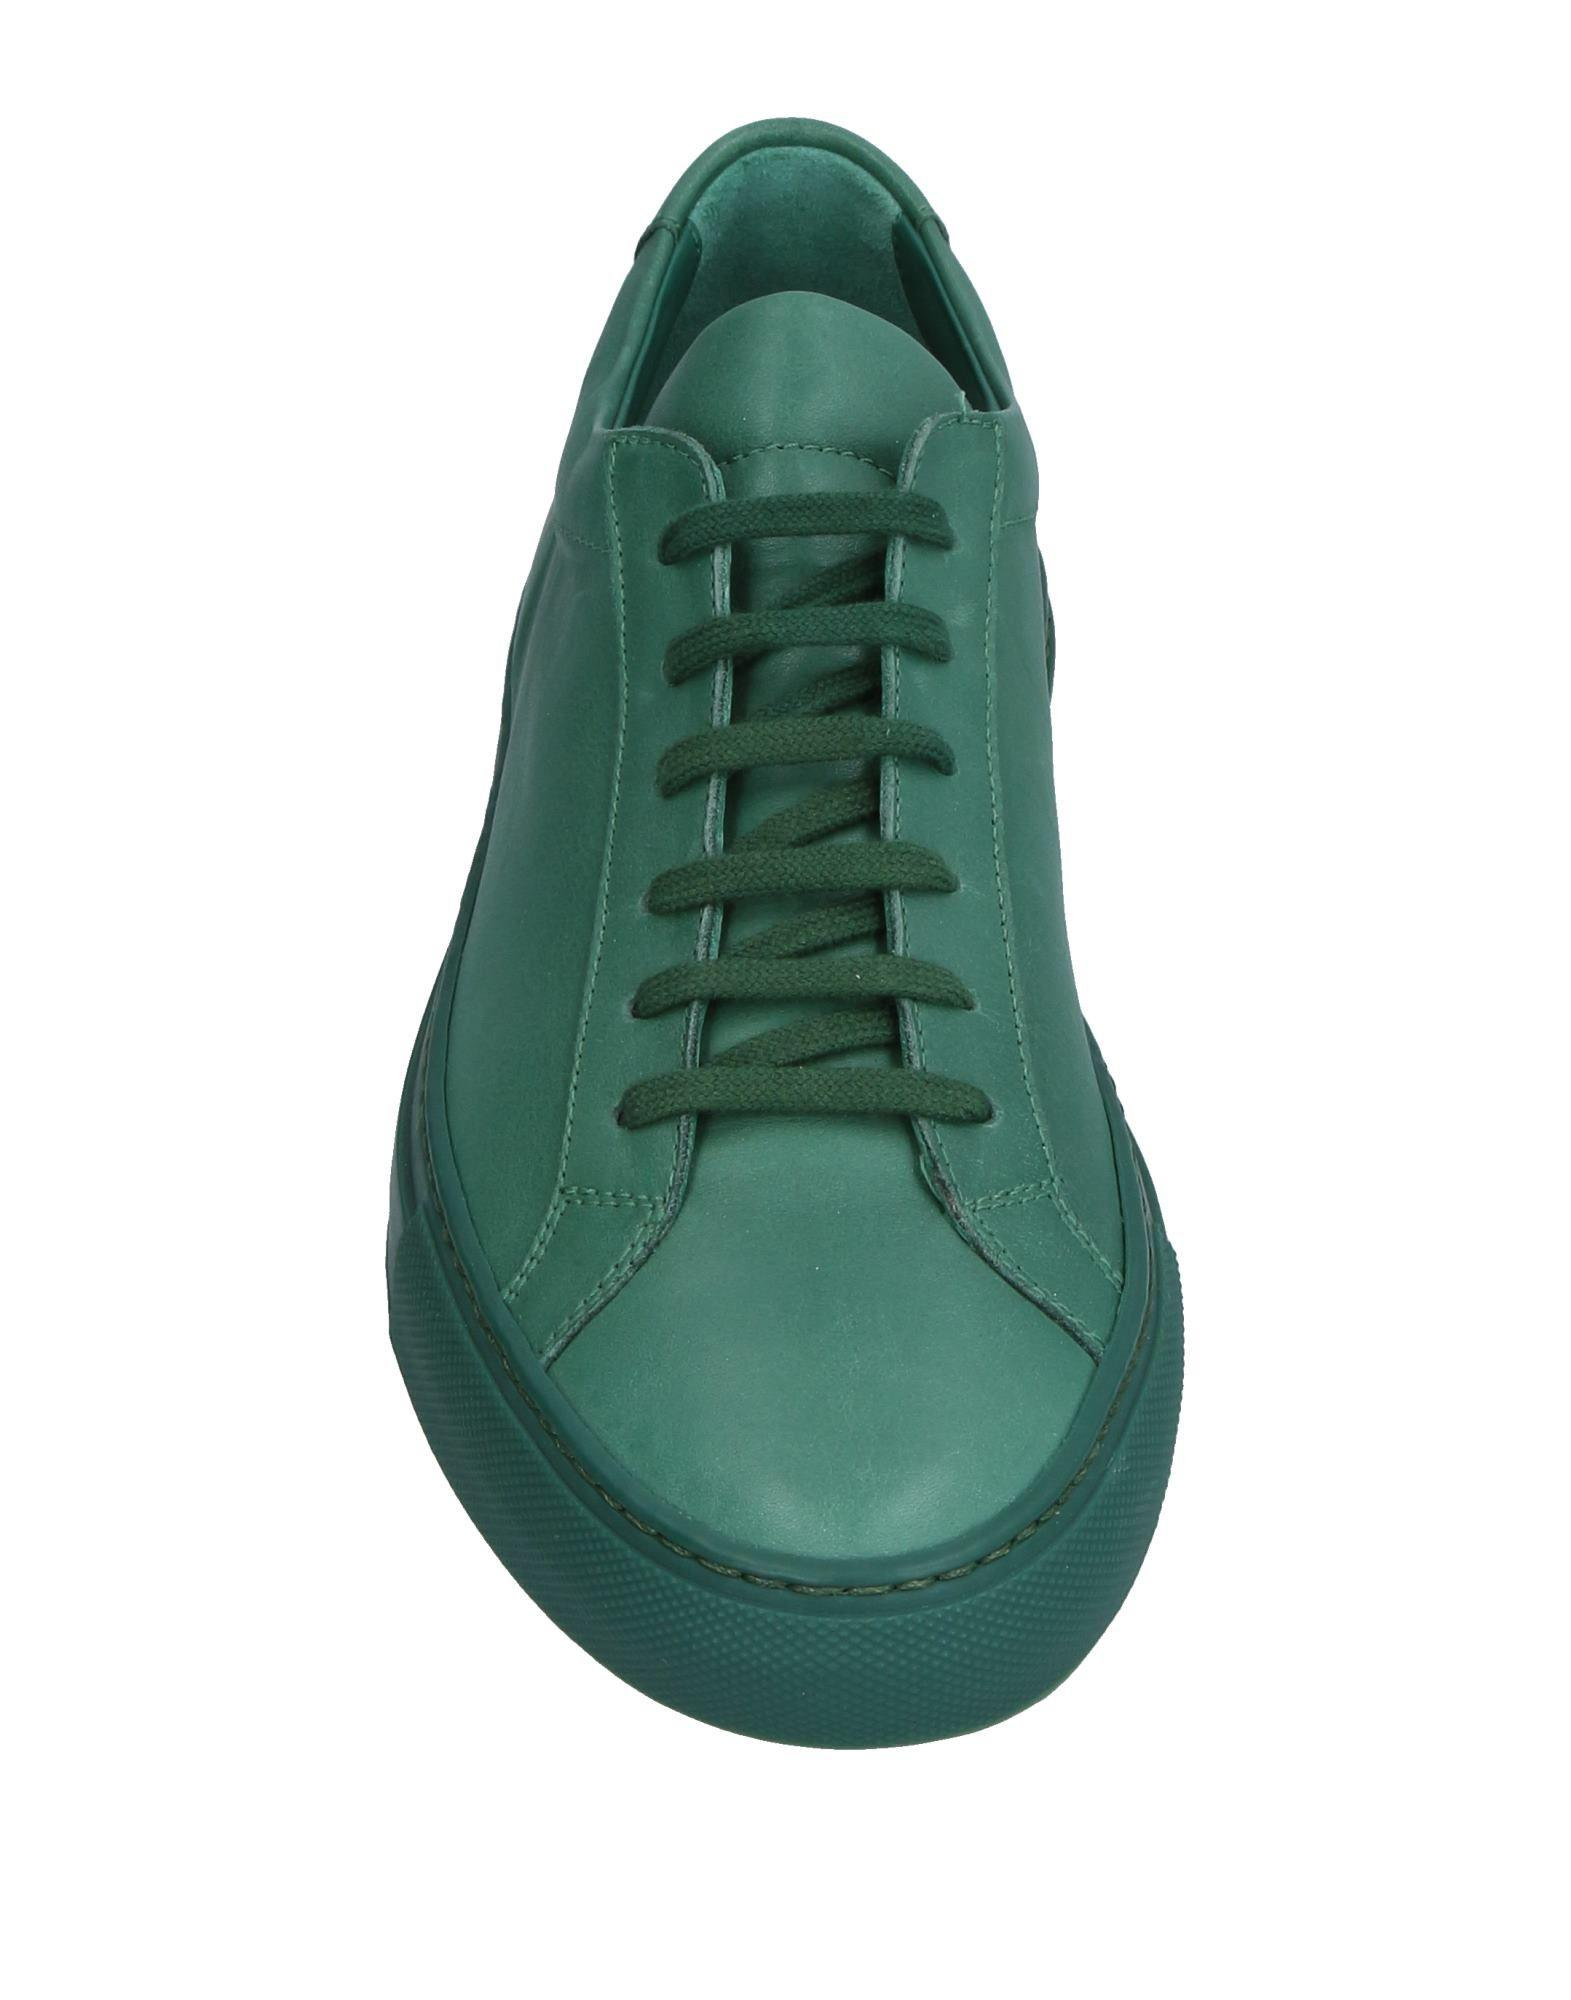 Common Projects Leather Low-tops & Sneakers in Green for Men